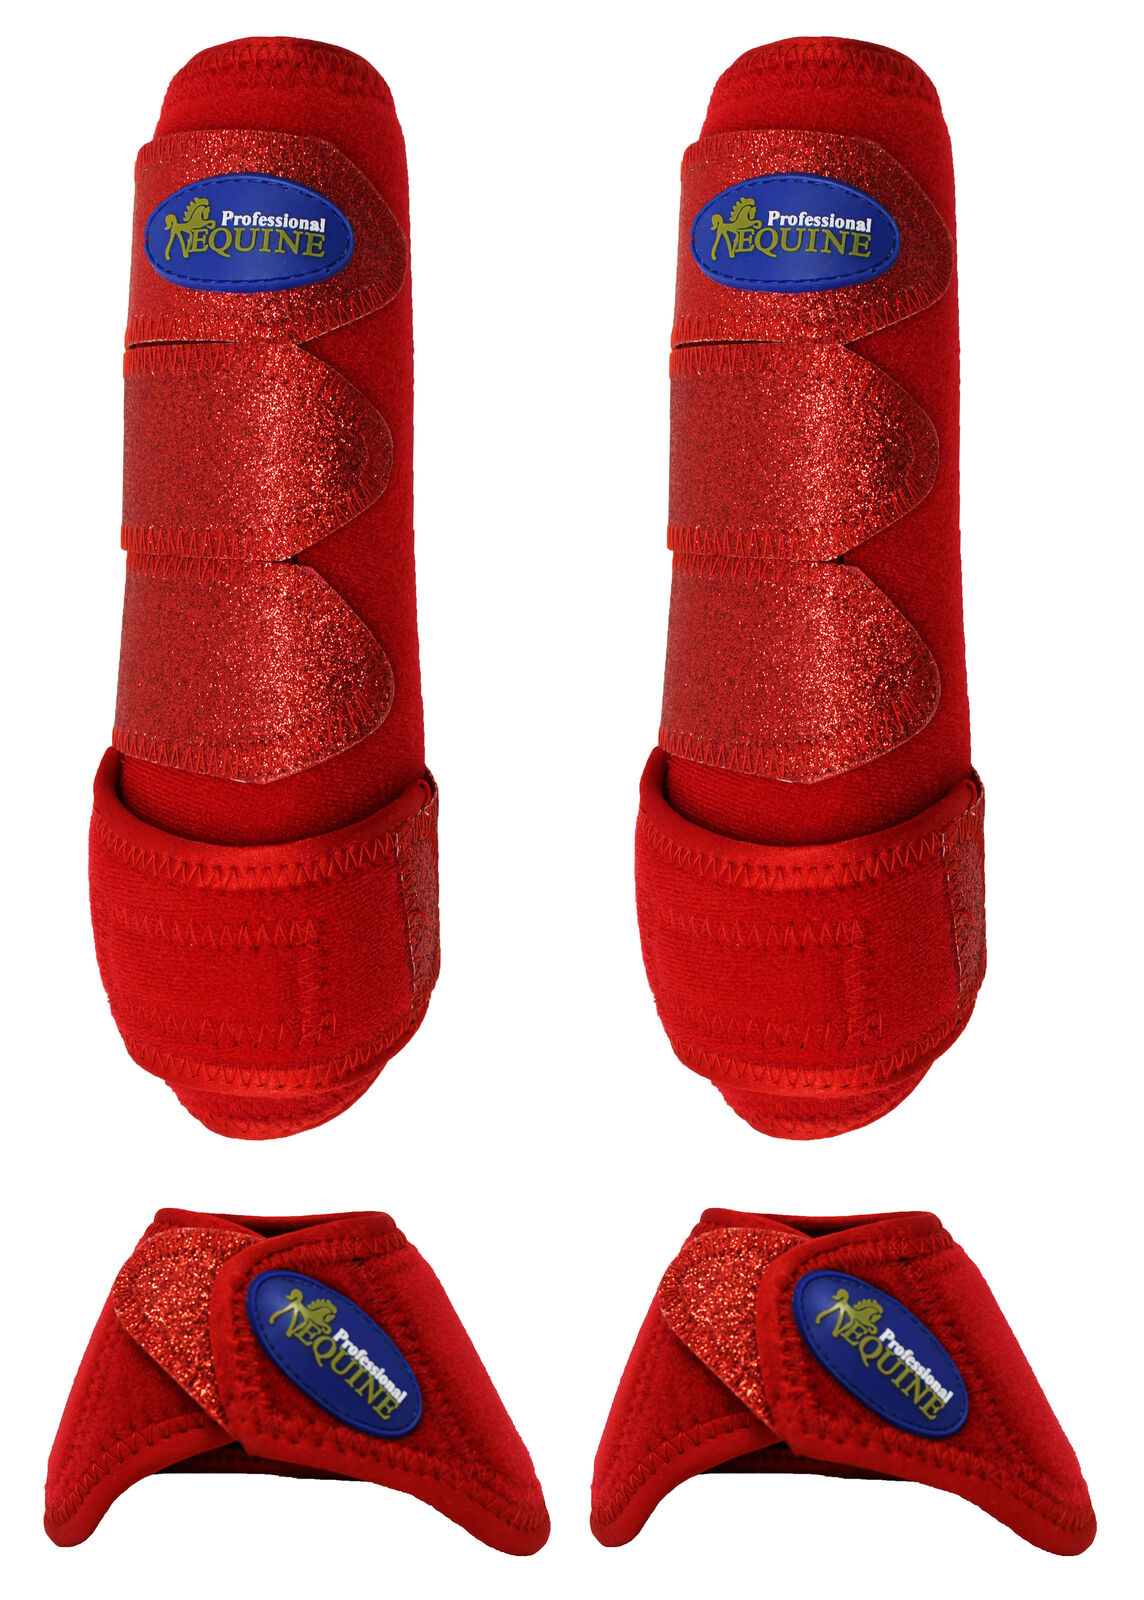 Horse  Medium Professional Equine Sports Medicine Splint Bell Boots 4151B